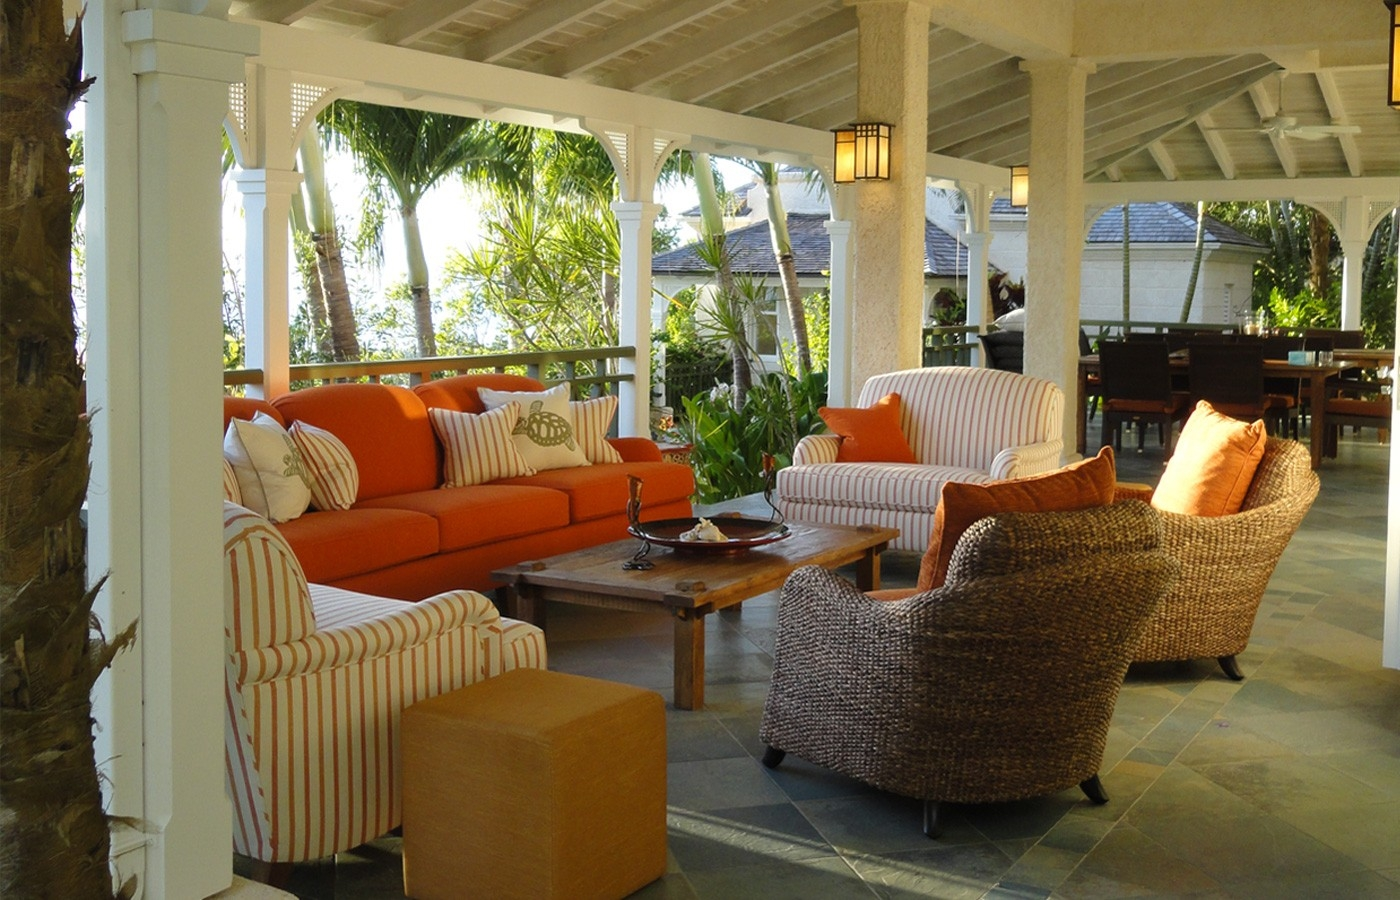 10 Best Caribbean Centerpieces Images On Pinterest: Search All Vero Beach Florida Homes